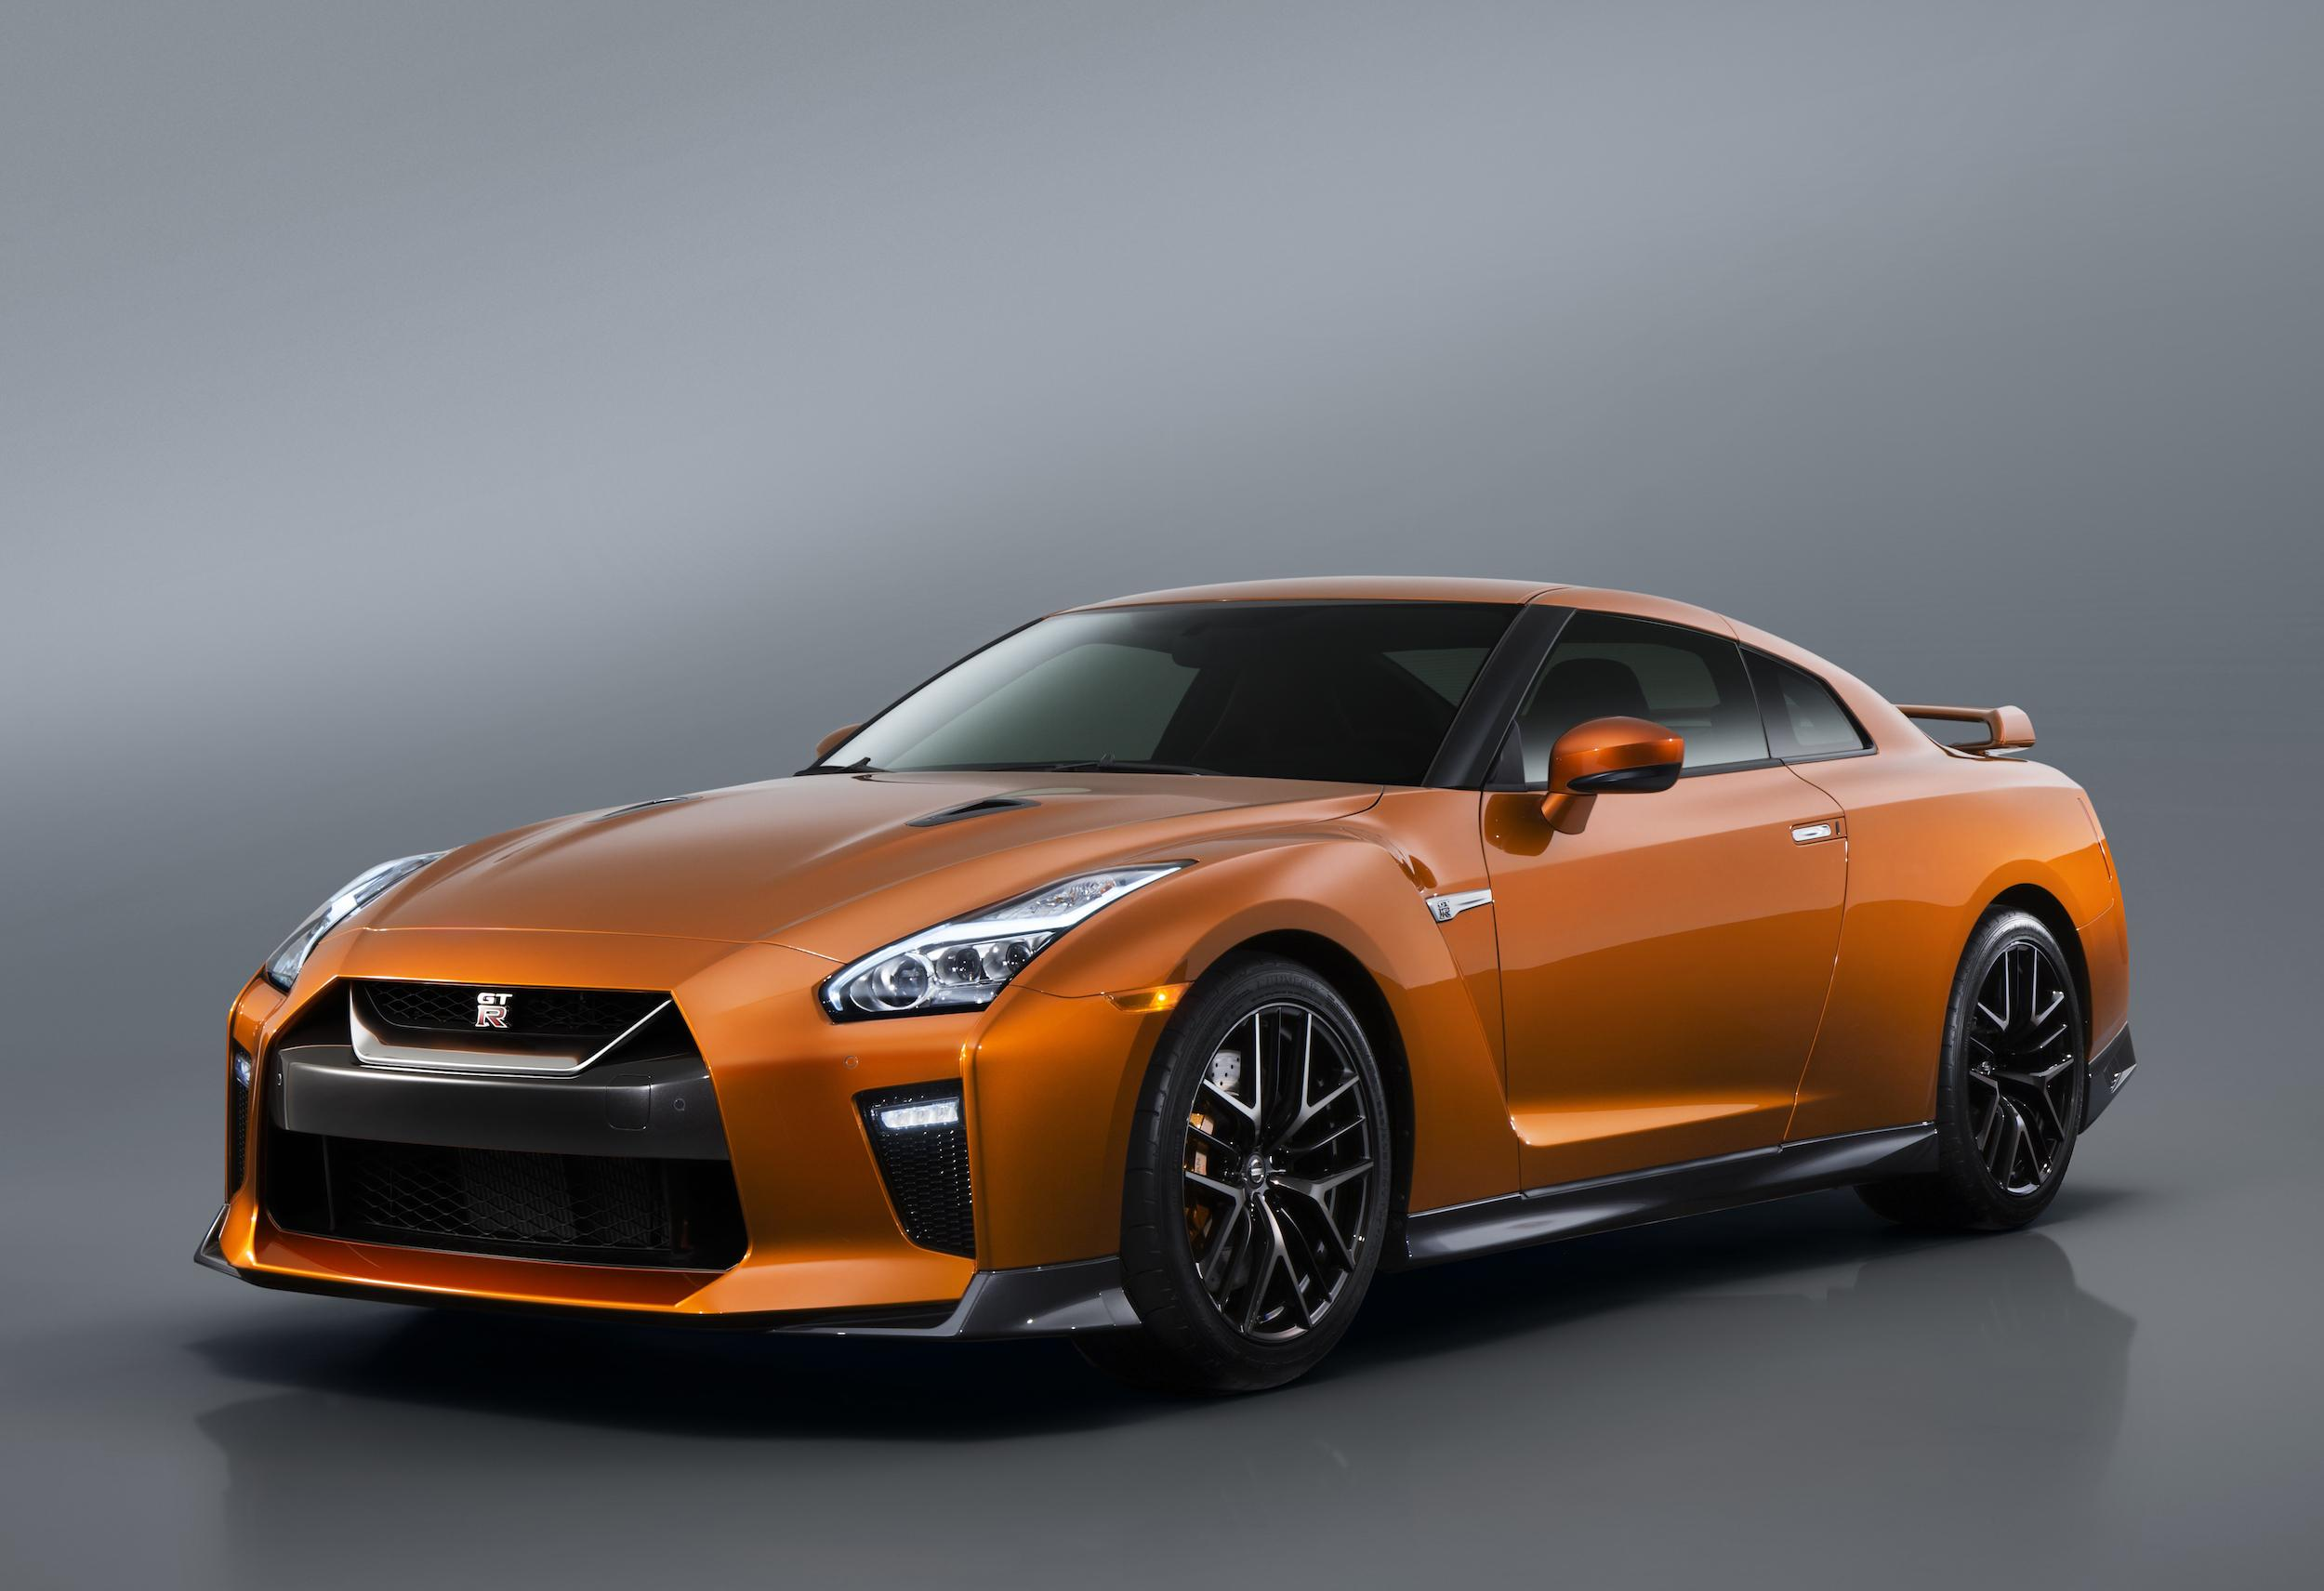 Nissan GT-R I Restyling 3 2016 - now Coupe #5